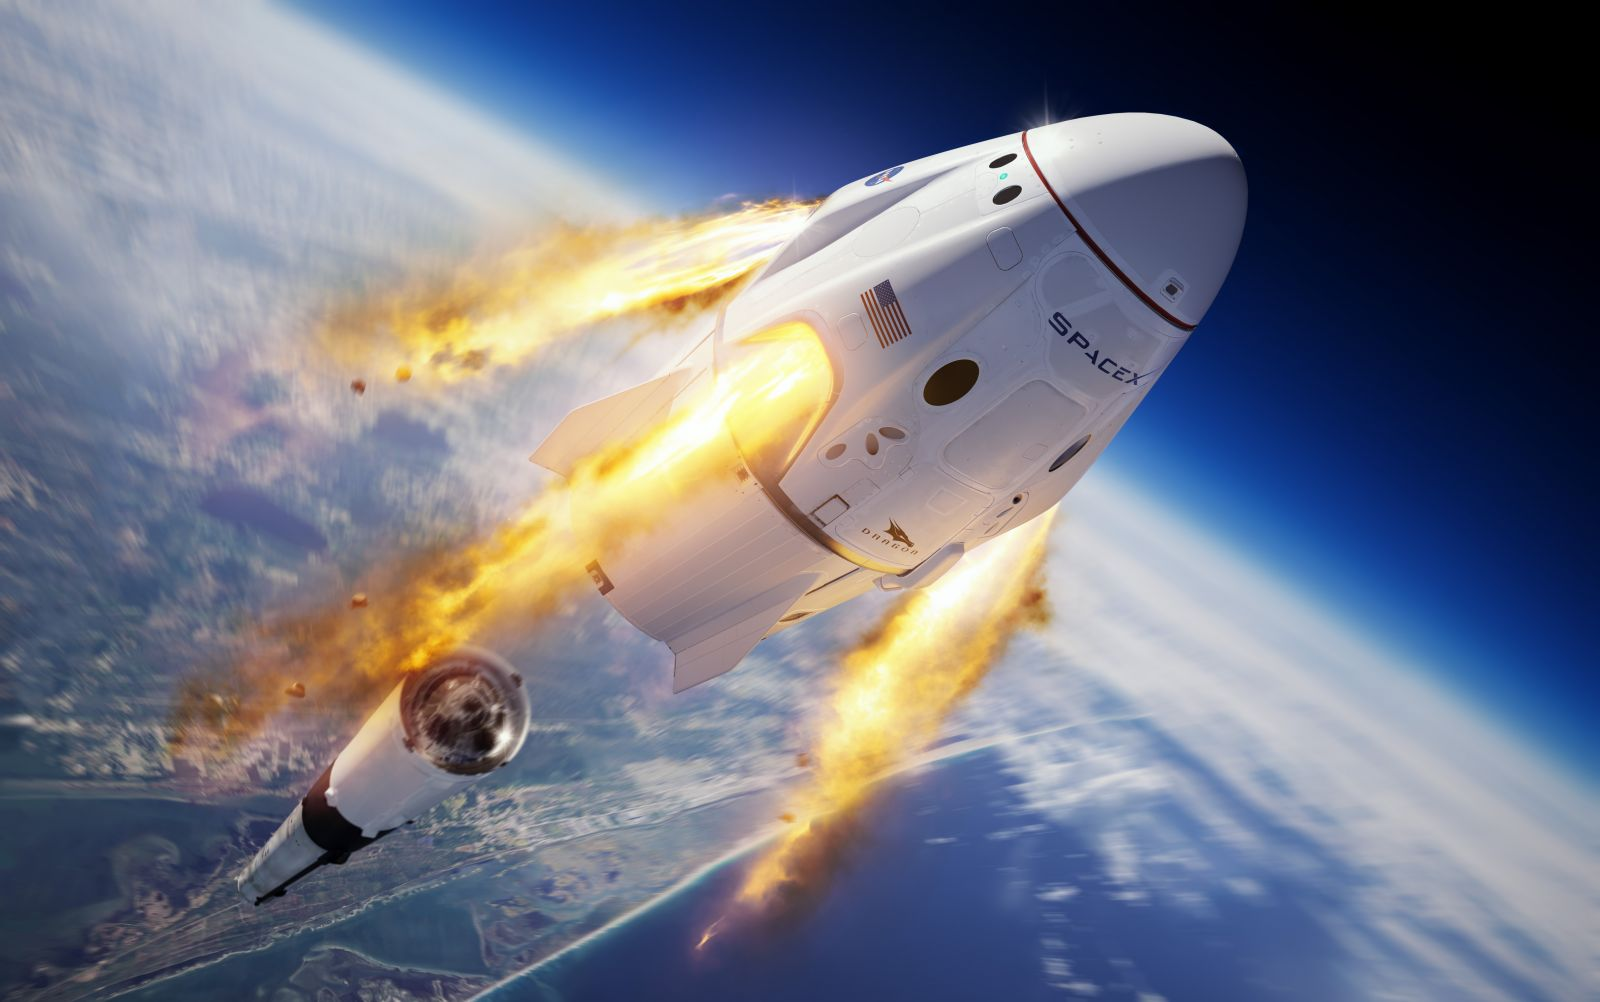 SpaceX successfully completed yet another milestone under NASA's Commercial Crew Program to send astronauts to the International Space Station. Image Credit: NASA